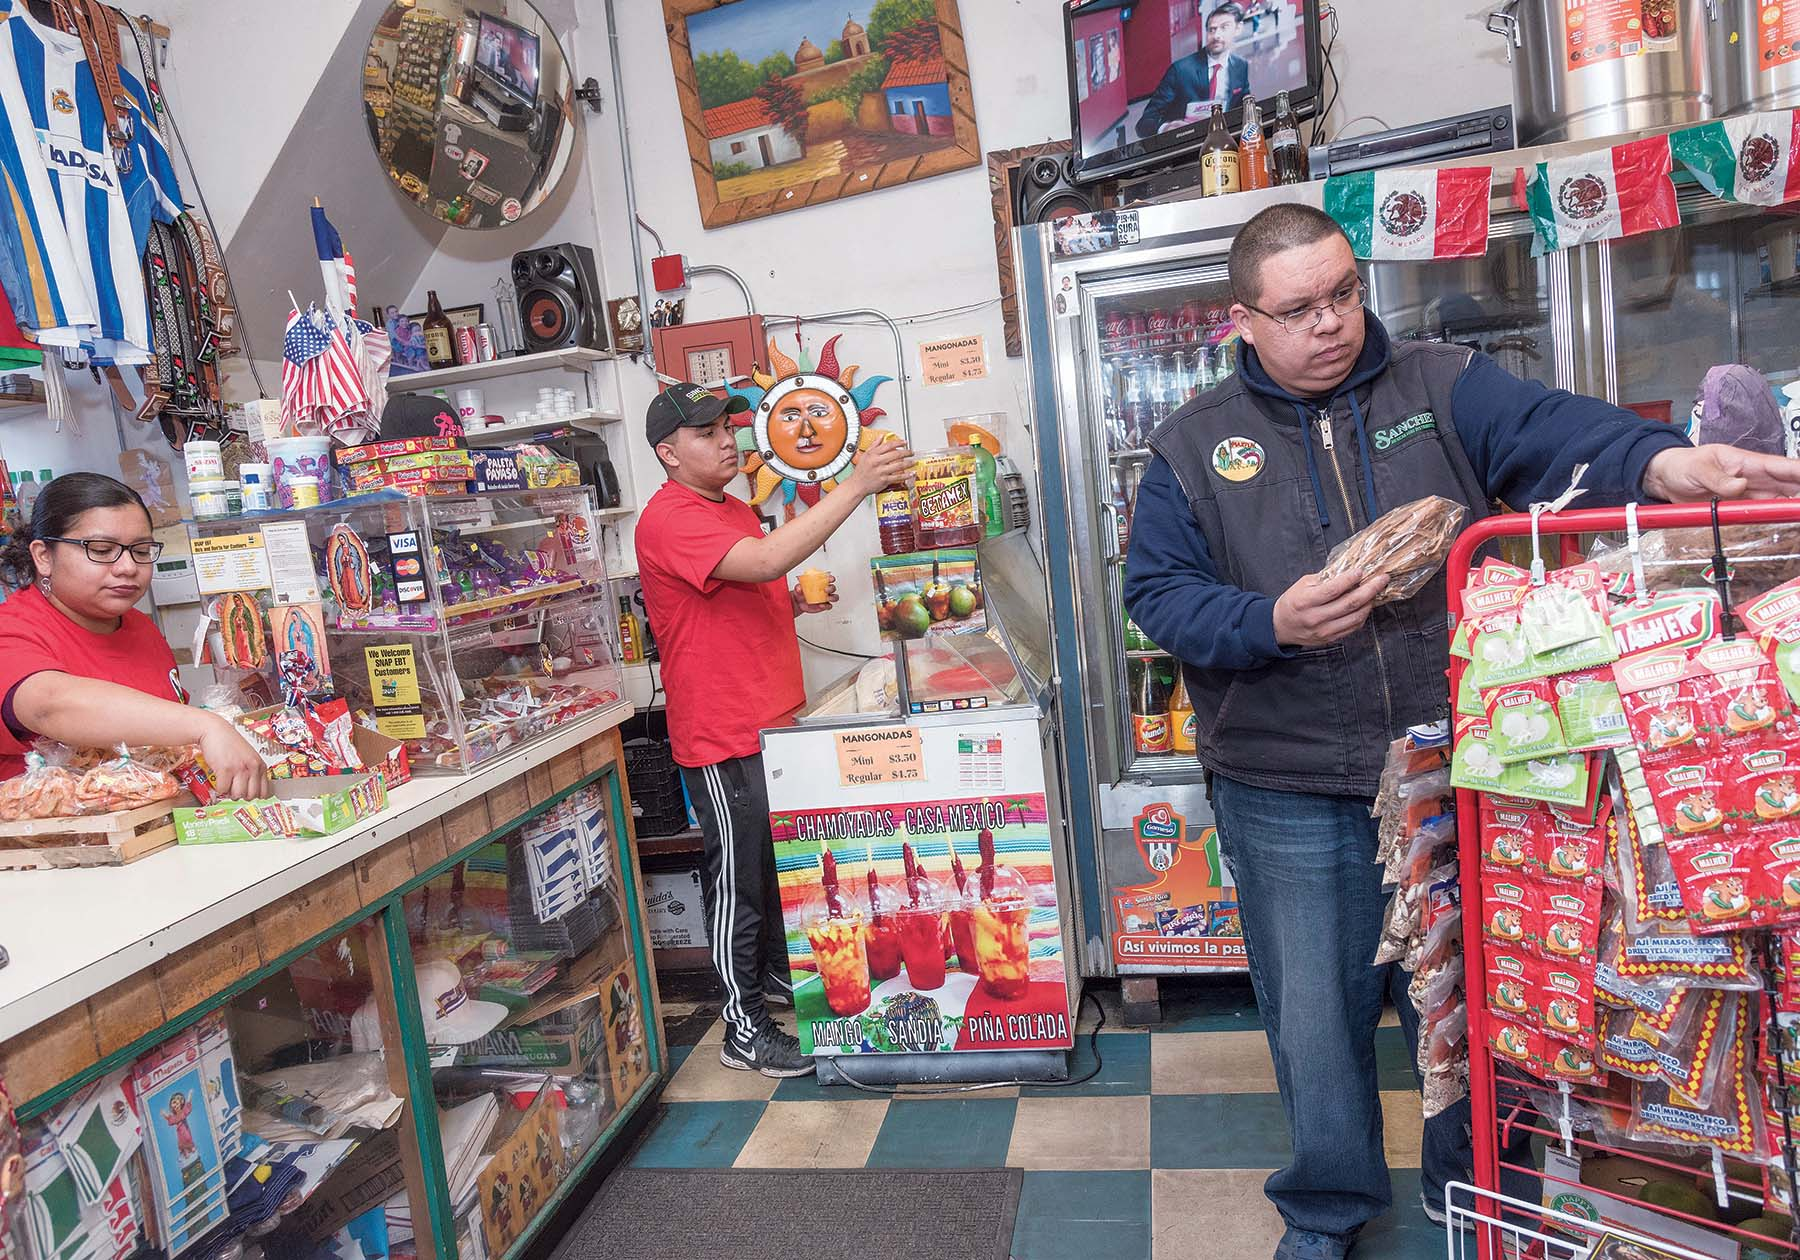 FAMILY AFFAIR: Casa Mexico, a family-owned retail store located on Atwells Avenue in Providence, specializes in Mexican grocery items, tacos, desserts and other items. From left: co-owner Jackie Sanchez, nephew Enrique Sanchez Jr., and Ivan Sanchez, co-owner. / PBN PHOTO/MICHAEL SALERNO